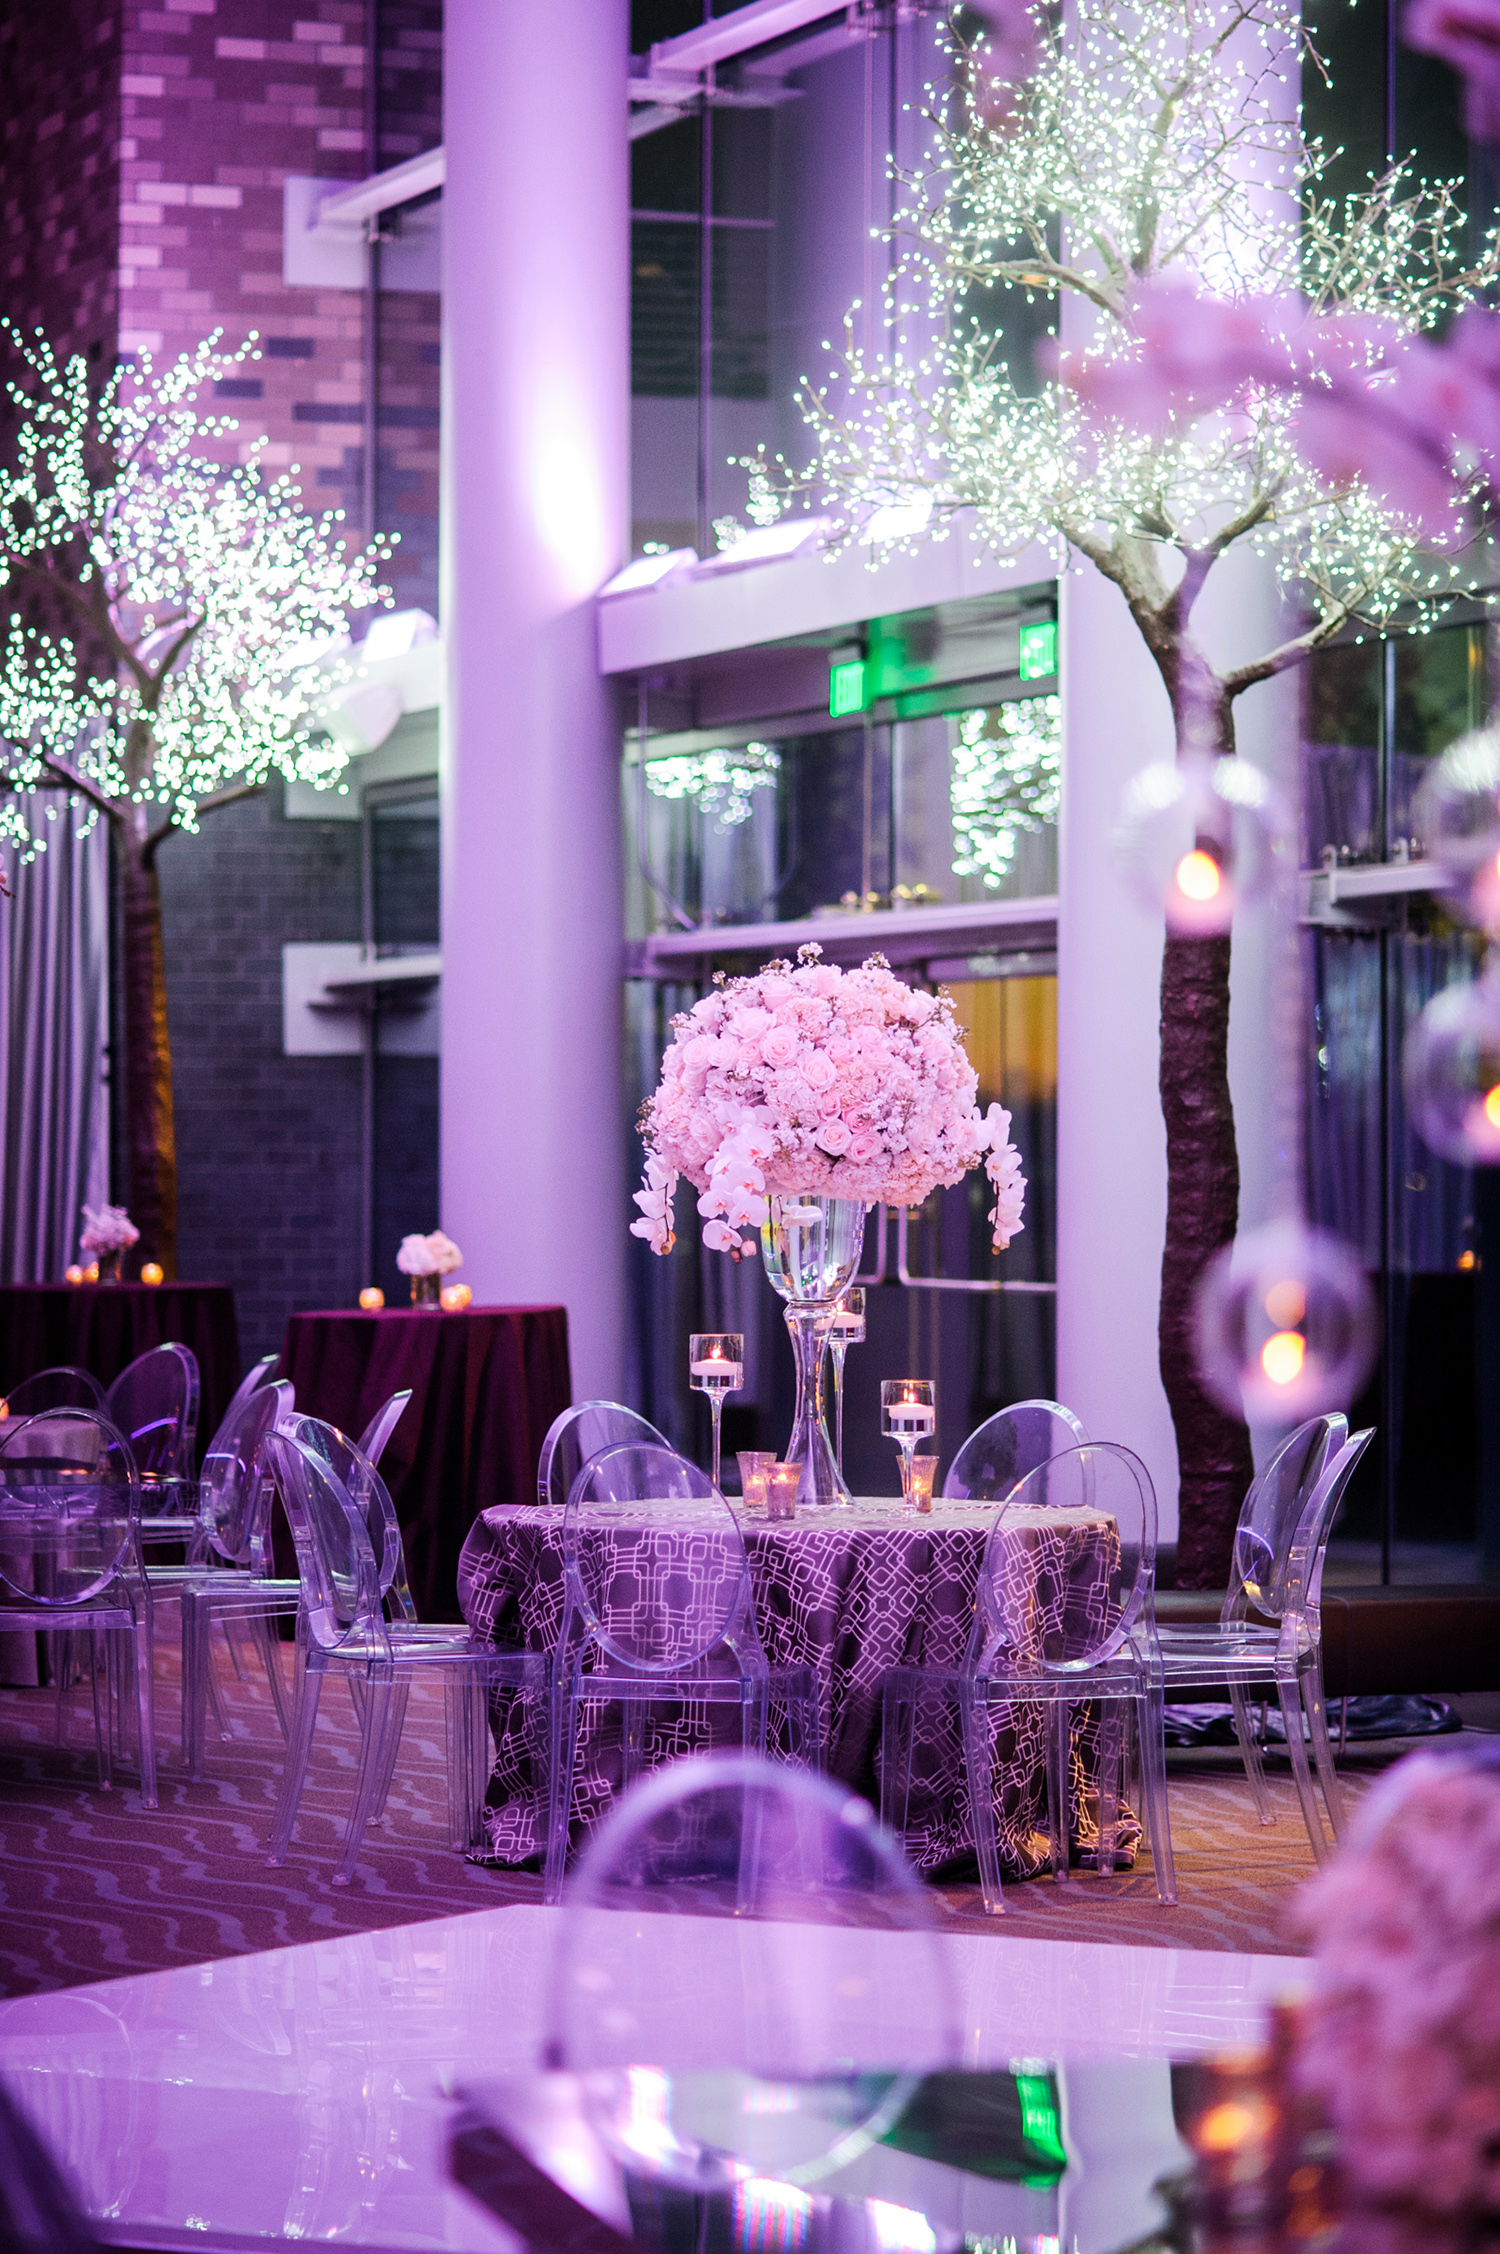 purple lighting - concert style party wedding